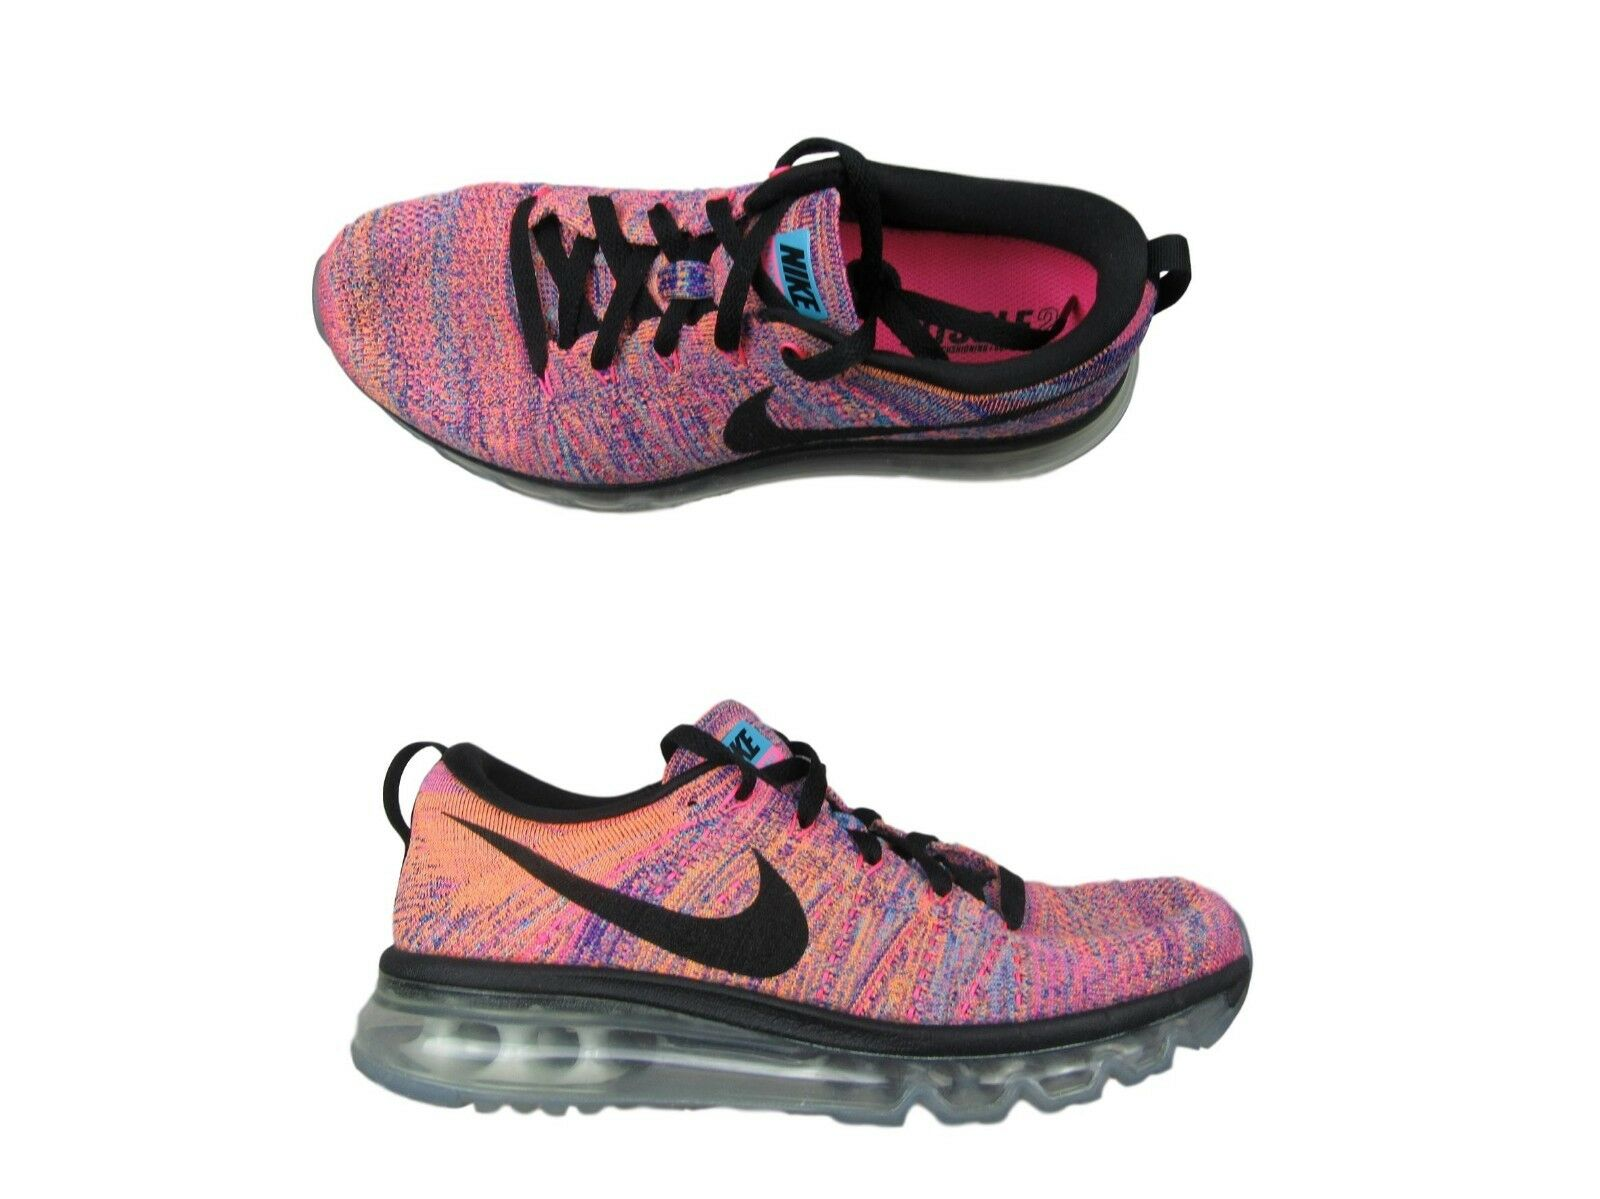 cb8ccbcbbb2e Nike Flyknit Max Running Shoes Size 8.5 Concord Gamma Blue Pink ...